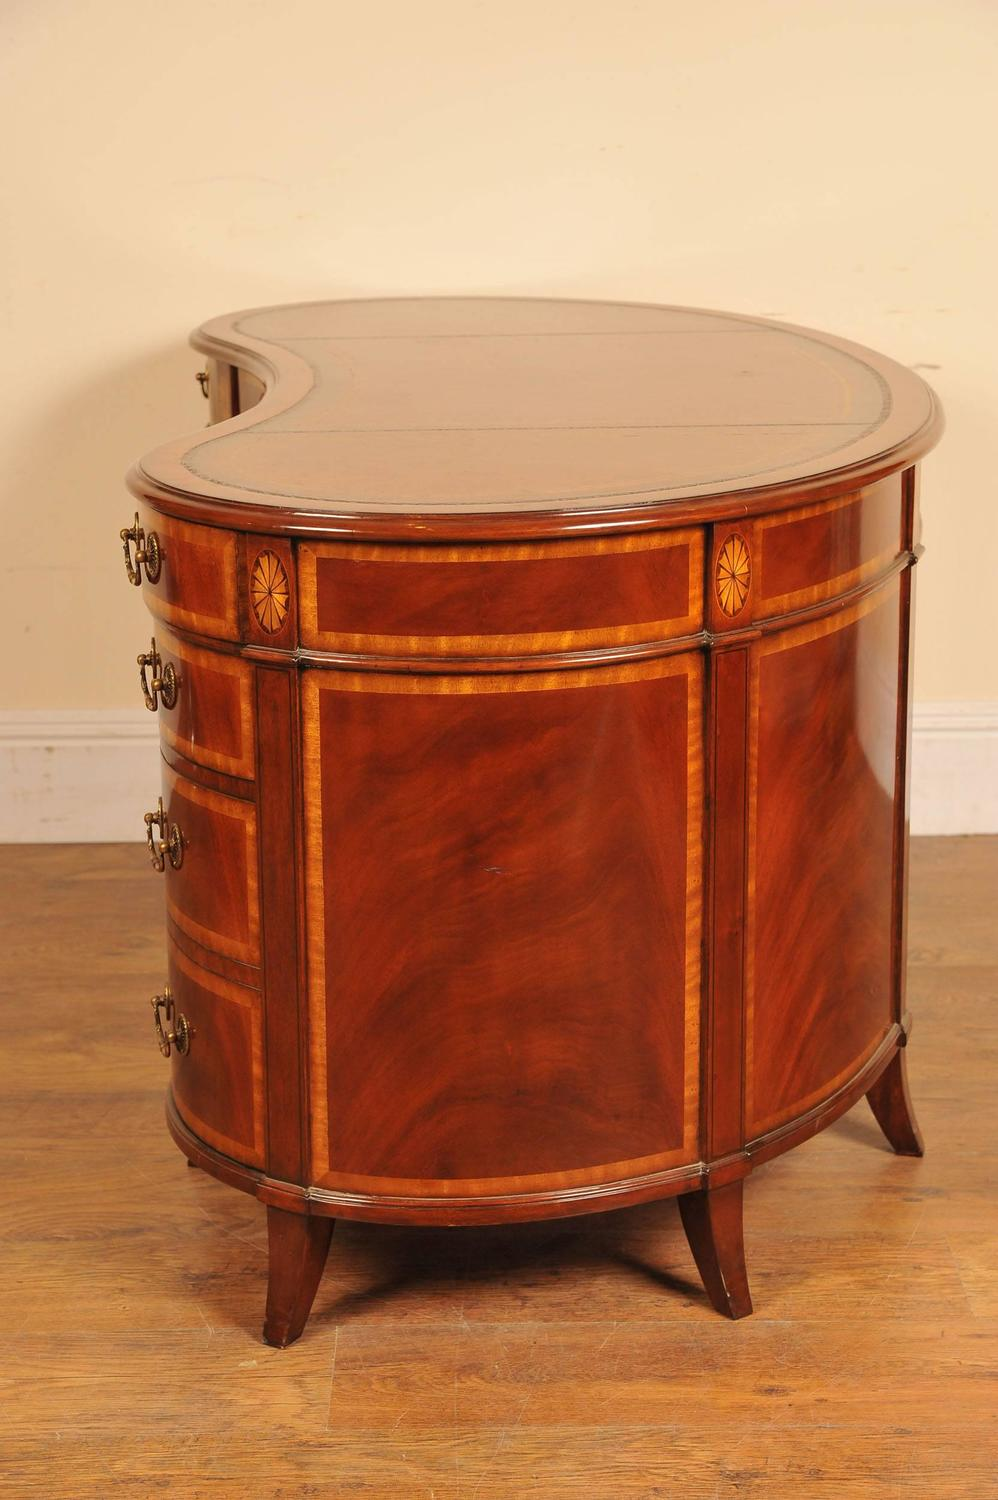 Regency Mahogany Kidney Desk Furniture For Sale at 1stdibs